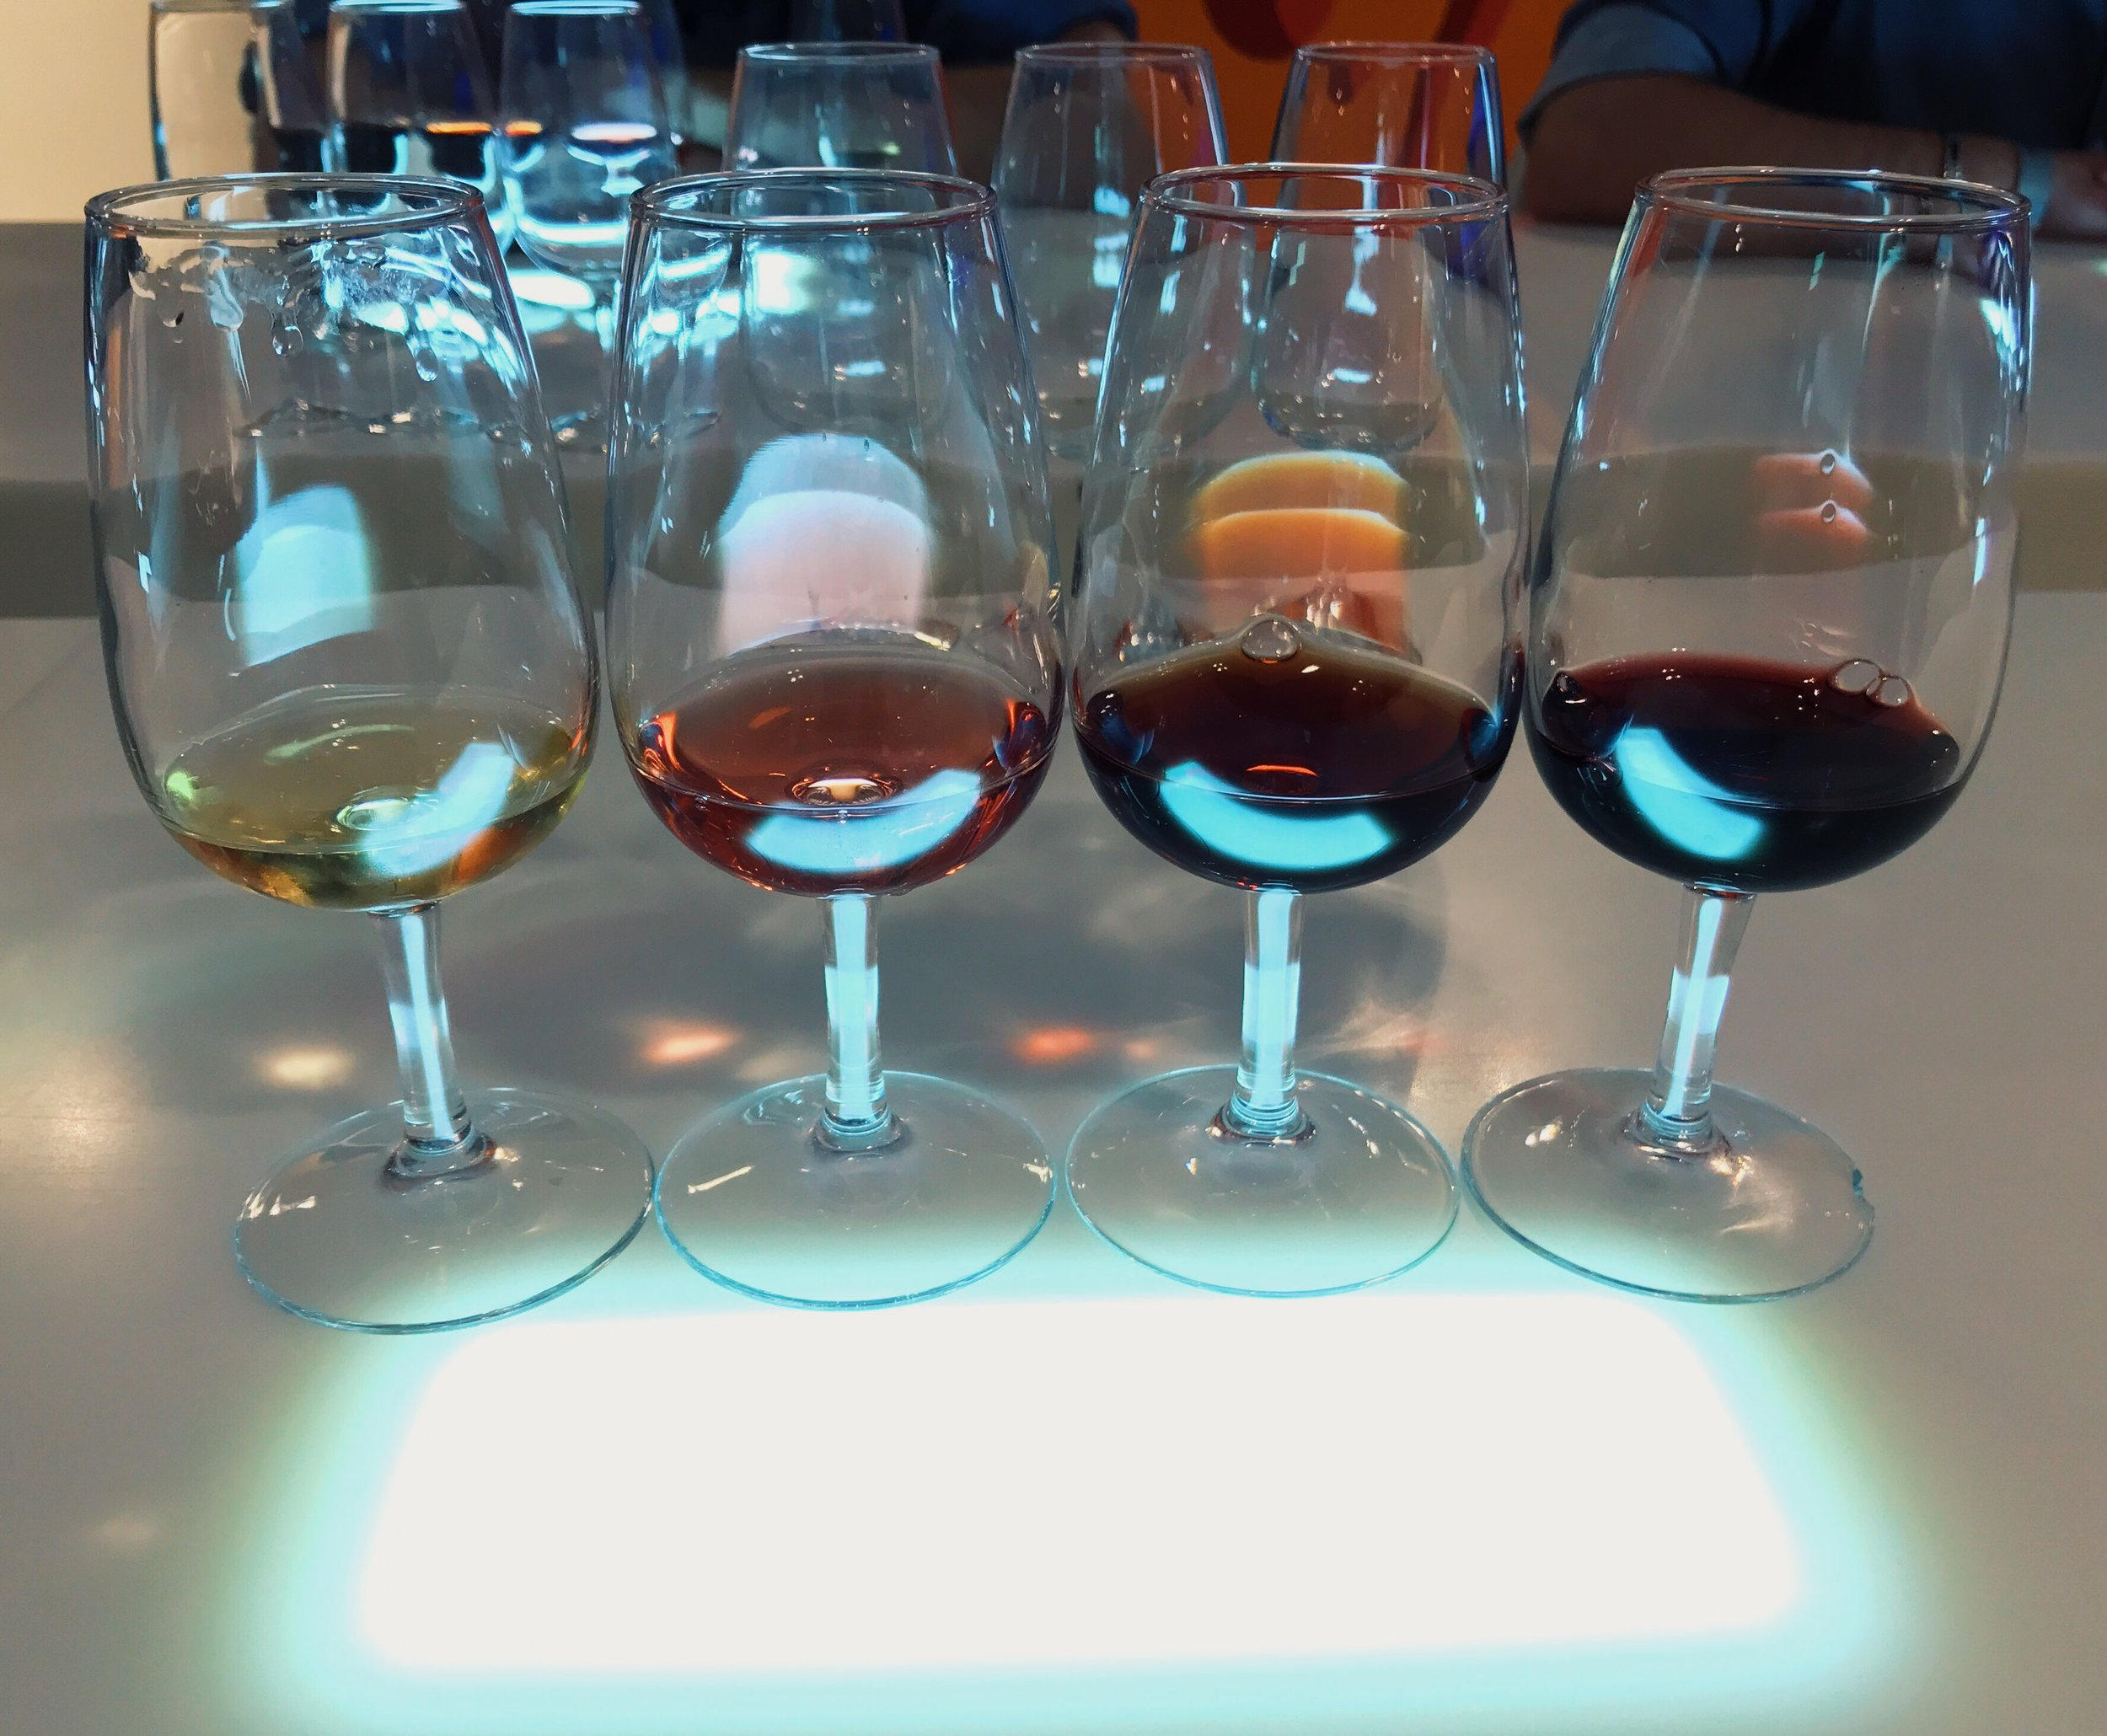 Port tasting at Espaço Porto Cruz, a space for one of the most popular brands of port. From left to right: white, rose, tawny, ruby.